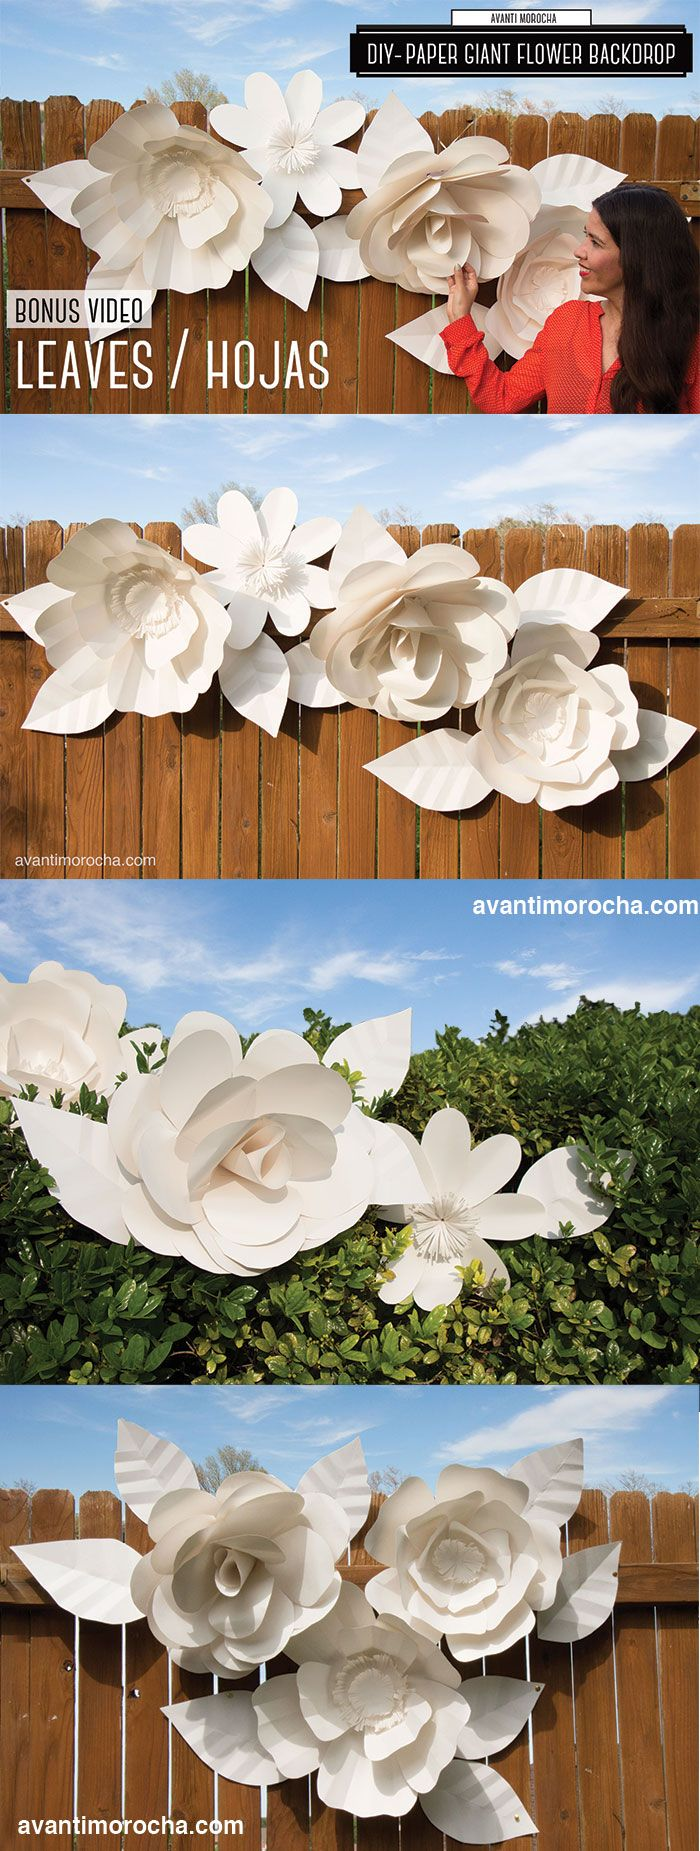 "DIY Paper Giant Paper Flower Backdrop - Leaves . Mural de Flores de Papel Gigantes ""Hojas"" Wedding / Bodas Download the flowers templates from my blog avantimorocha.com or buy them with one click on my Etsy shop https://www.etsy.com/shop/AvantiMorochaDIYs  Please don't forget to share your creations on my Facebook page https://www.facebook.com/La...  or tag me on Instagram @avantimorocha_1 I'd love to see them :)"